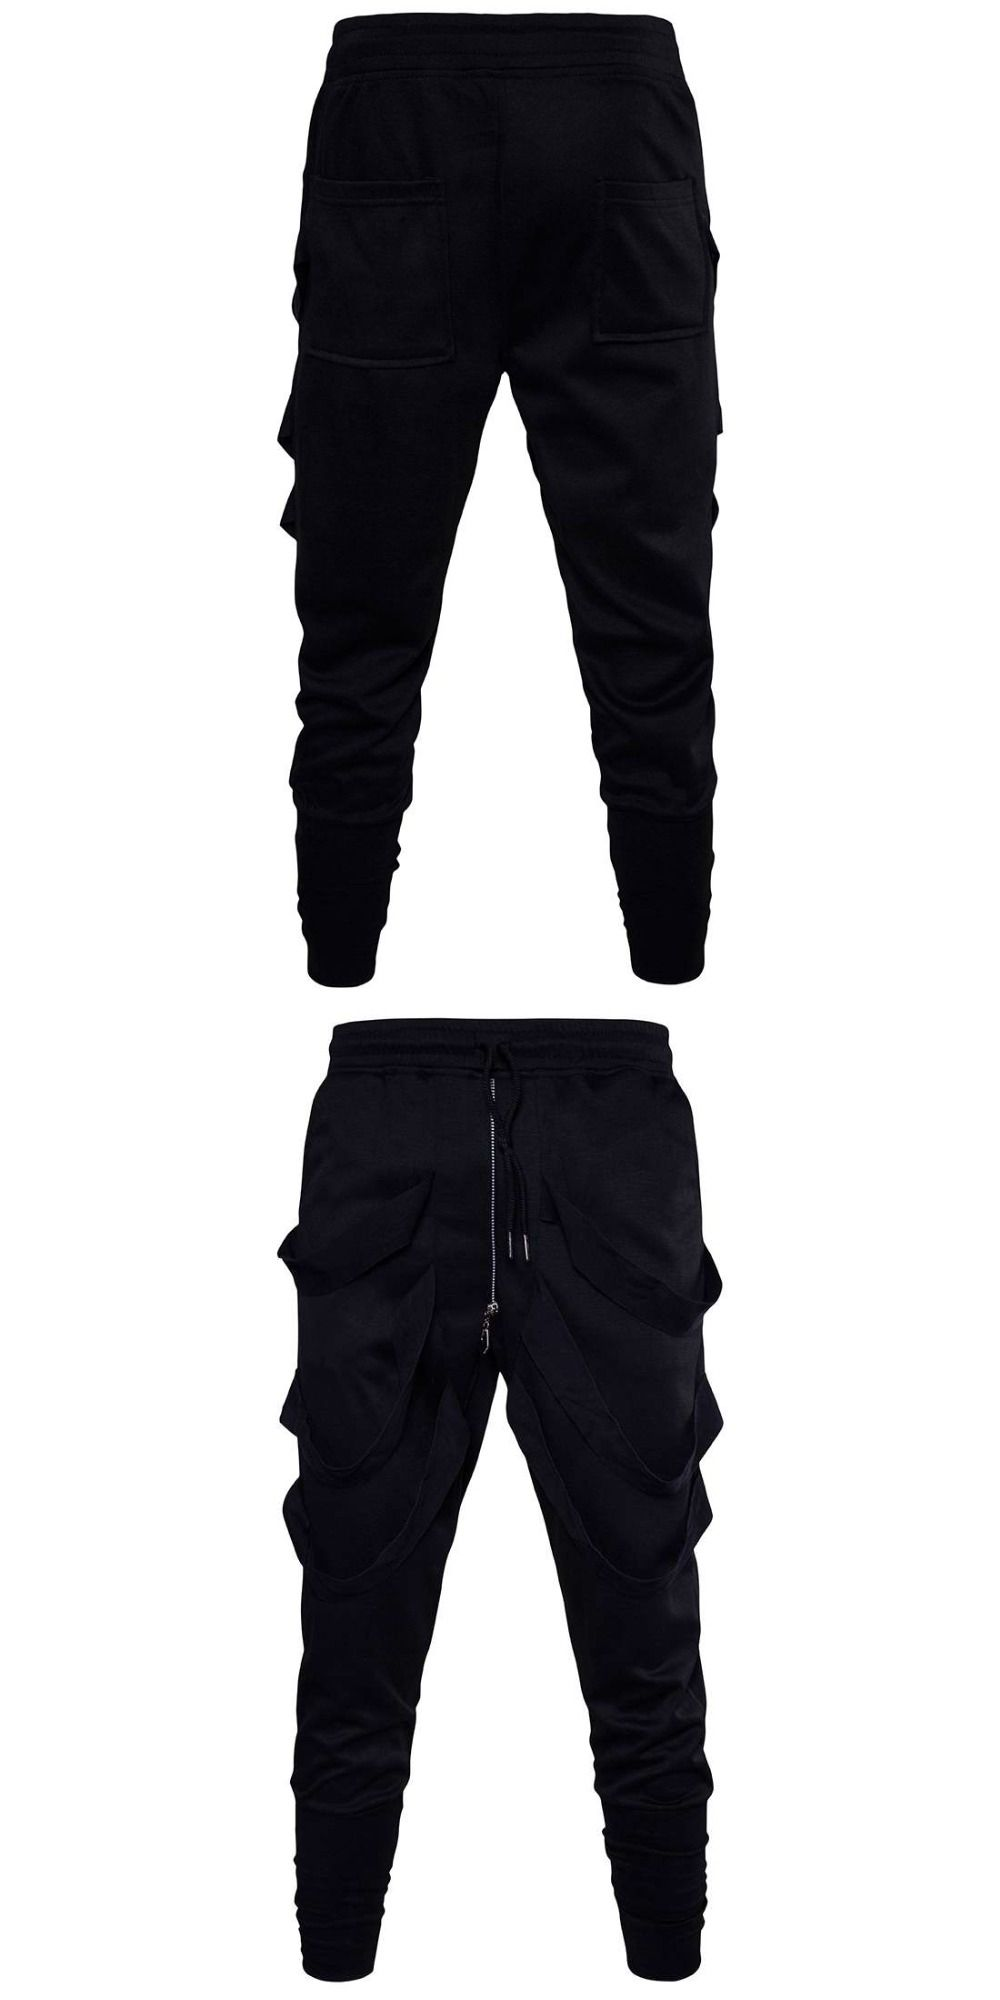 6ea683071074  1621 Hip hop pants men Black Harem track pants With ribbons Fashion Spring  trousers 2018 Joggers Sweatpants Pantalon hombre 3XL